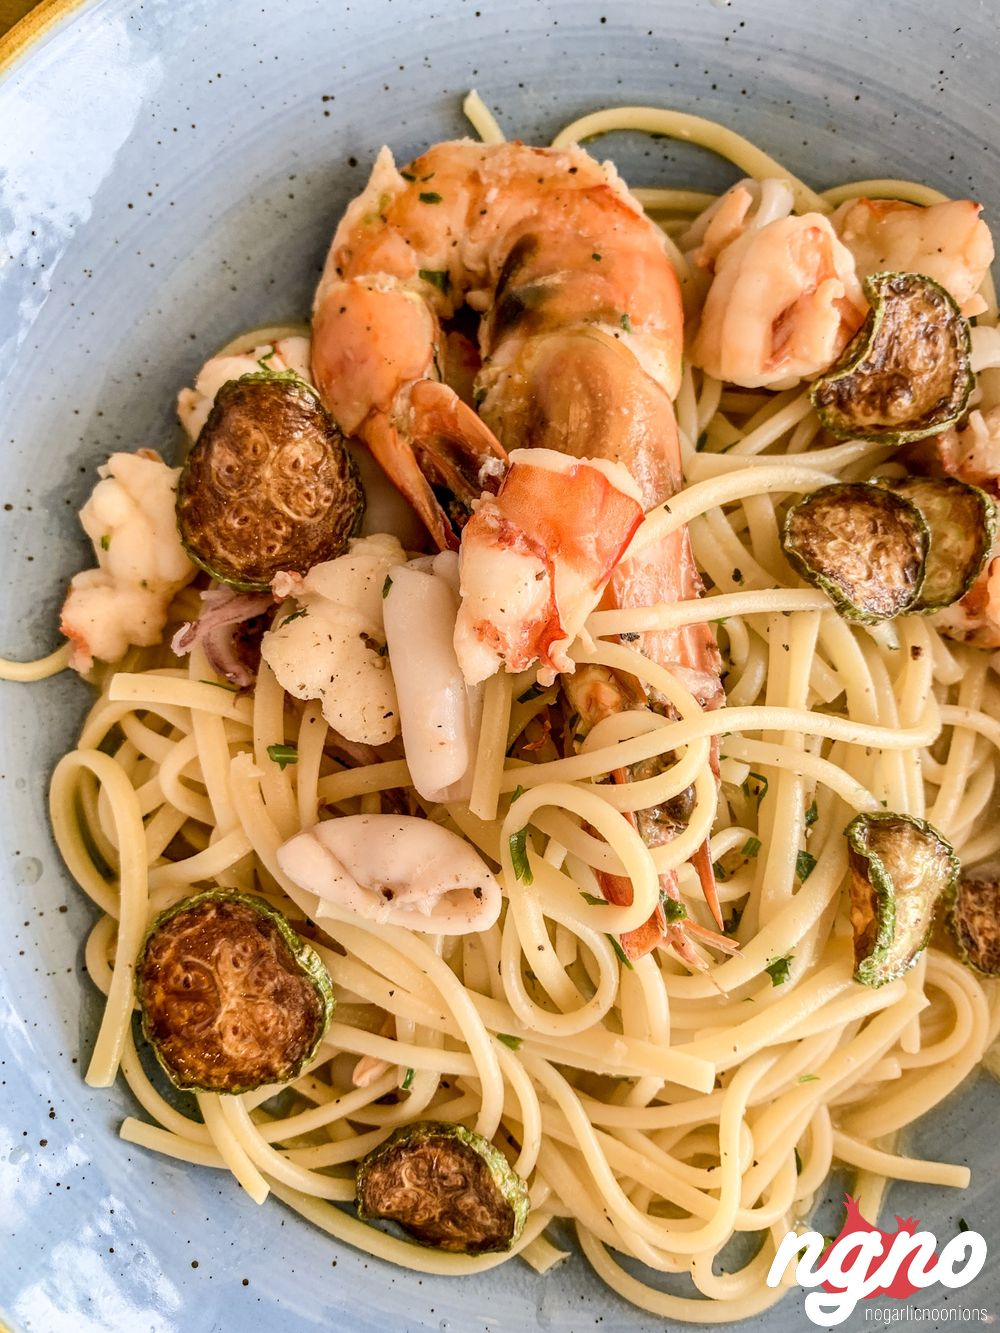 rossini-cafe-phoneicia-beirut-nogarlicnoonions-252019-05-15-08-01-09